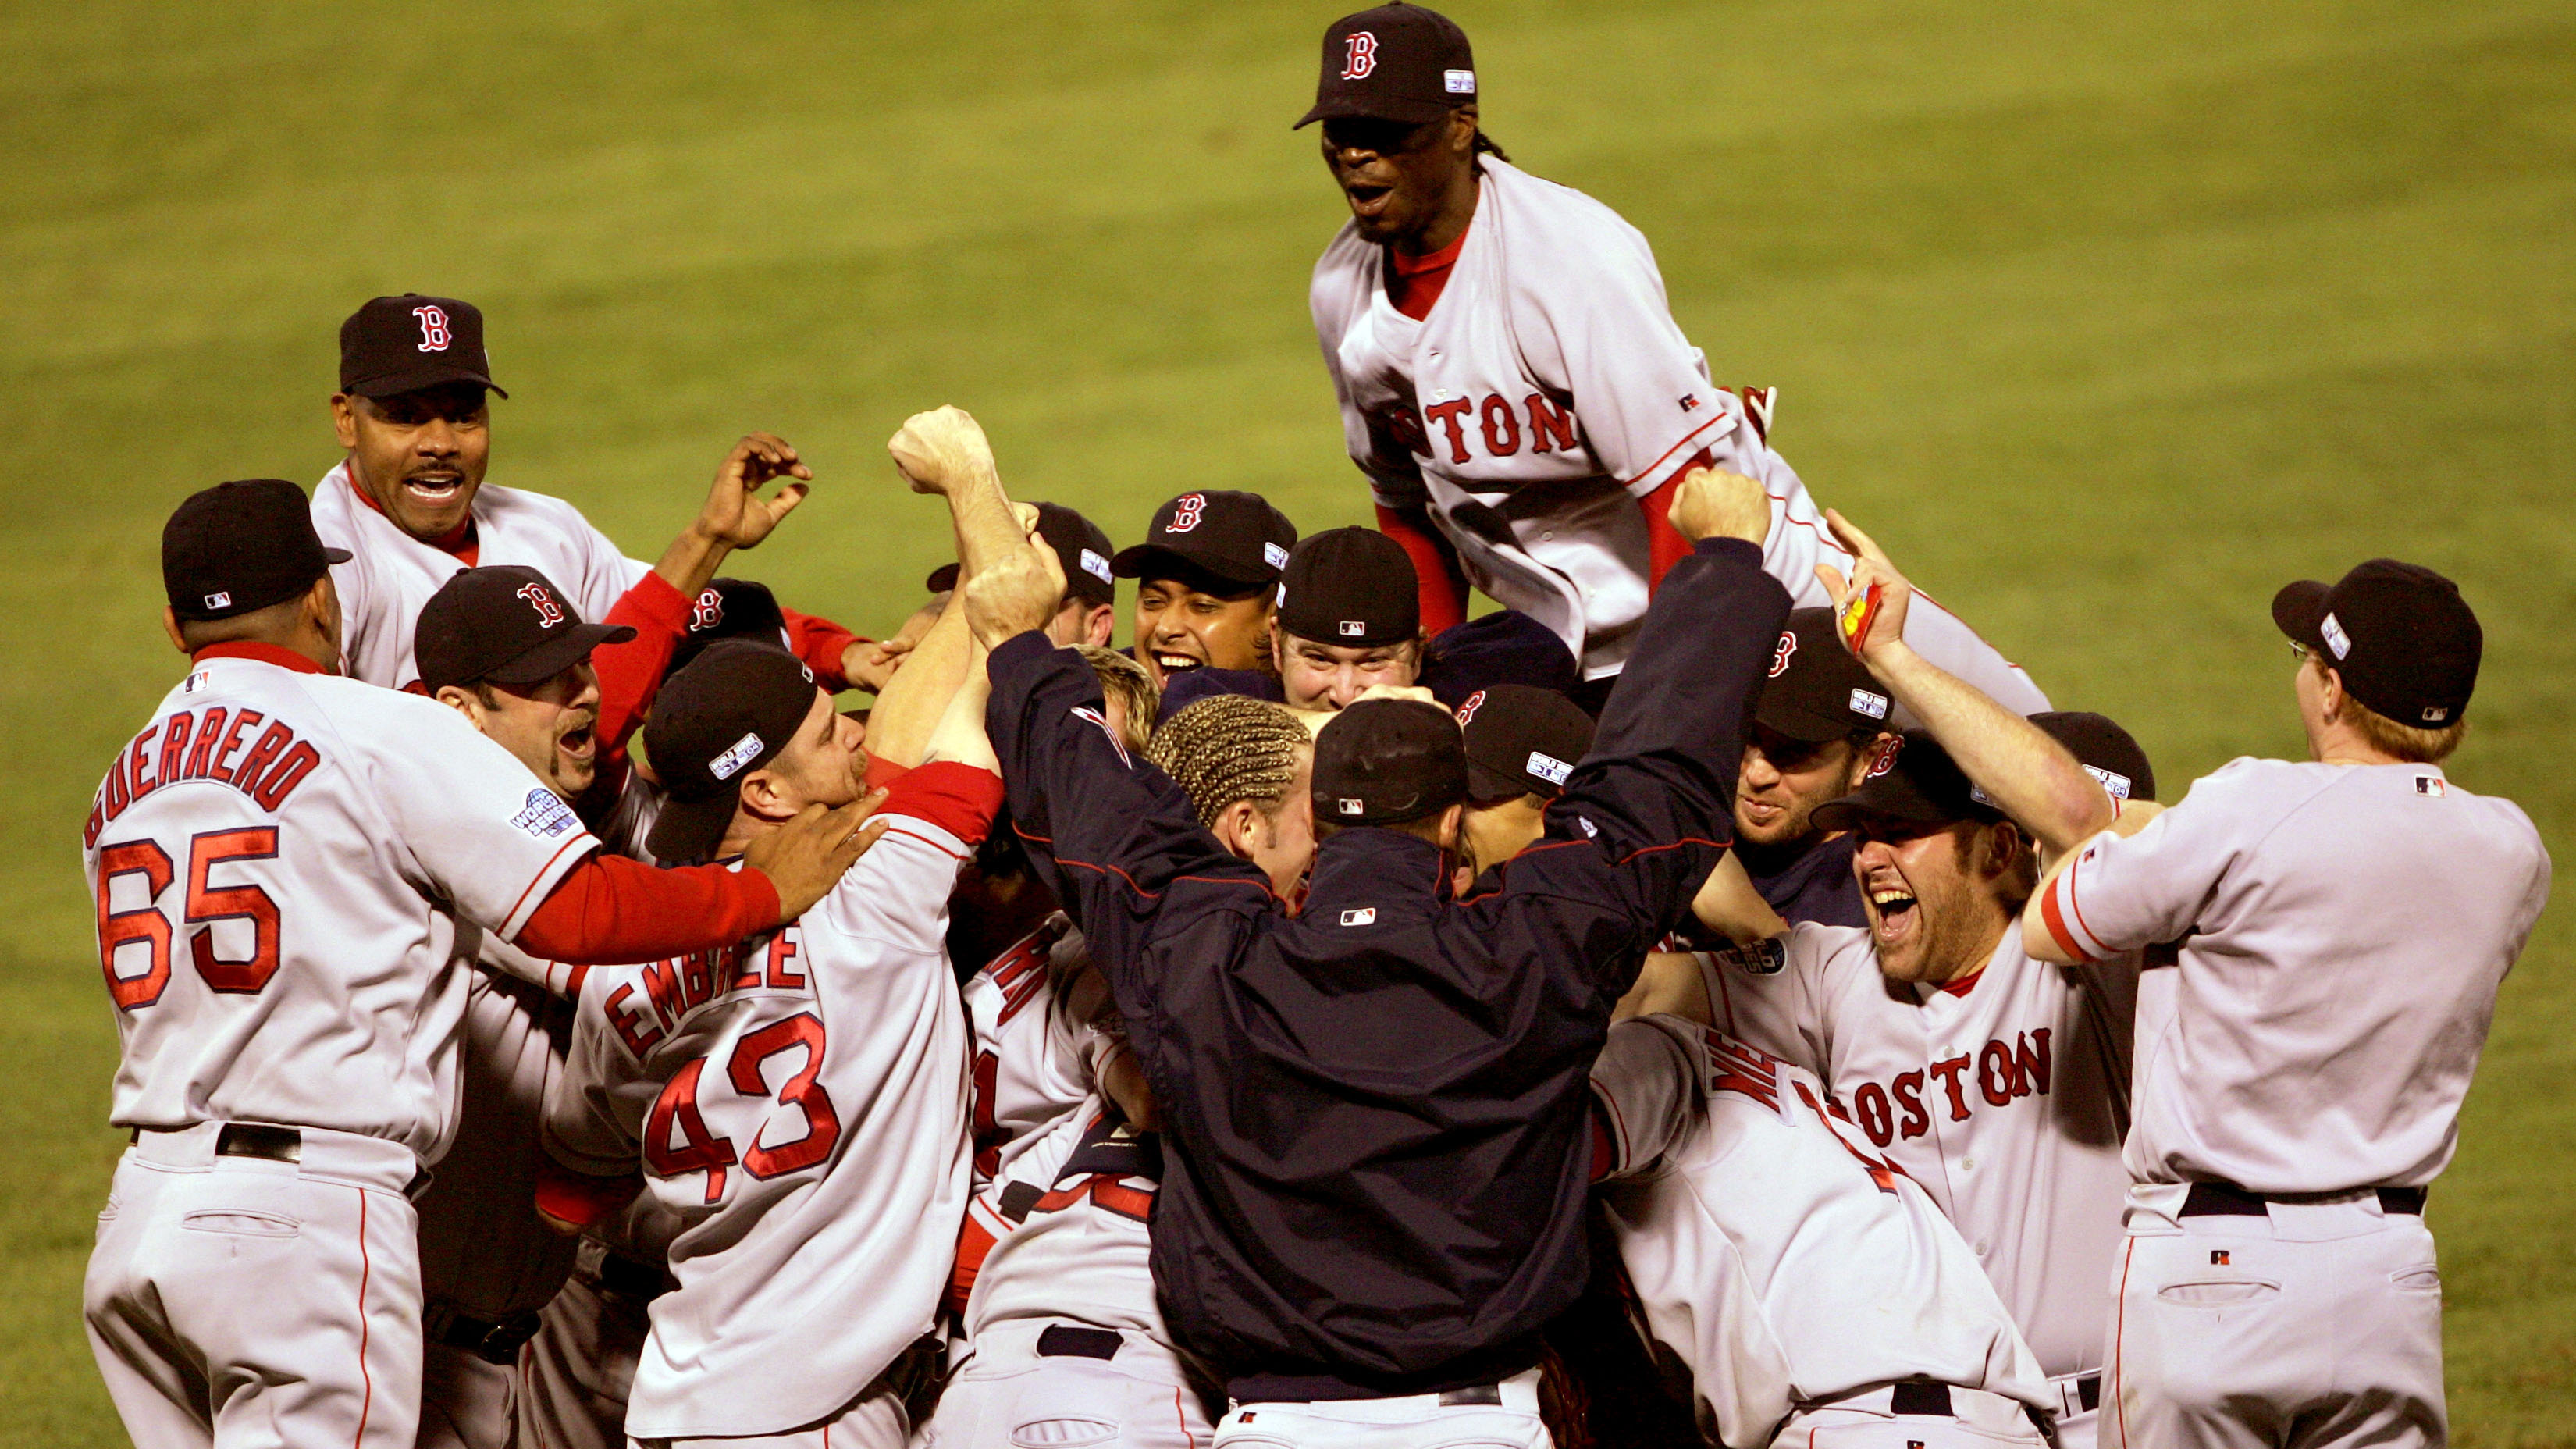 From the archives: Boston Red Sox vs. St. Louis Cardinals, 2004 World Series